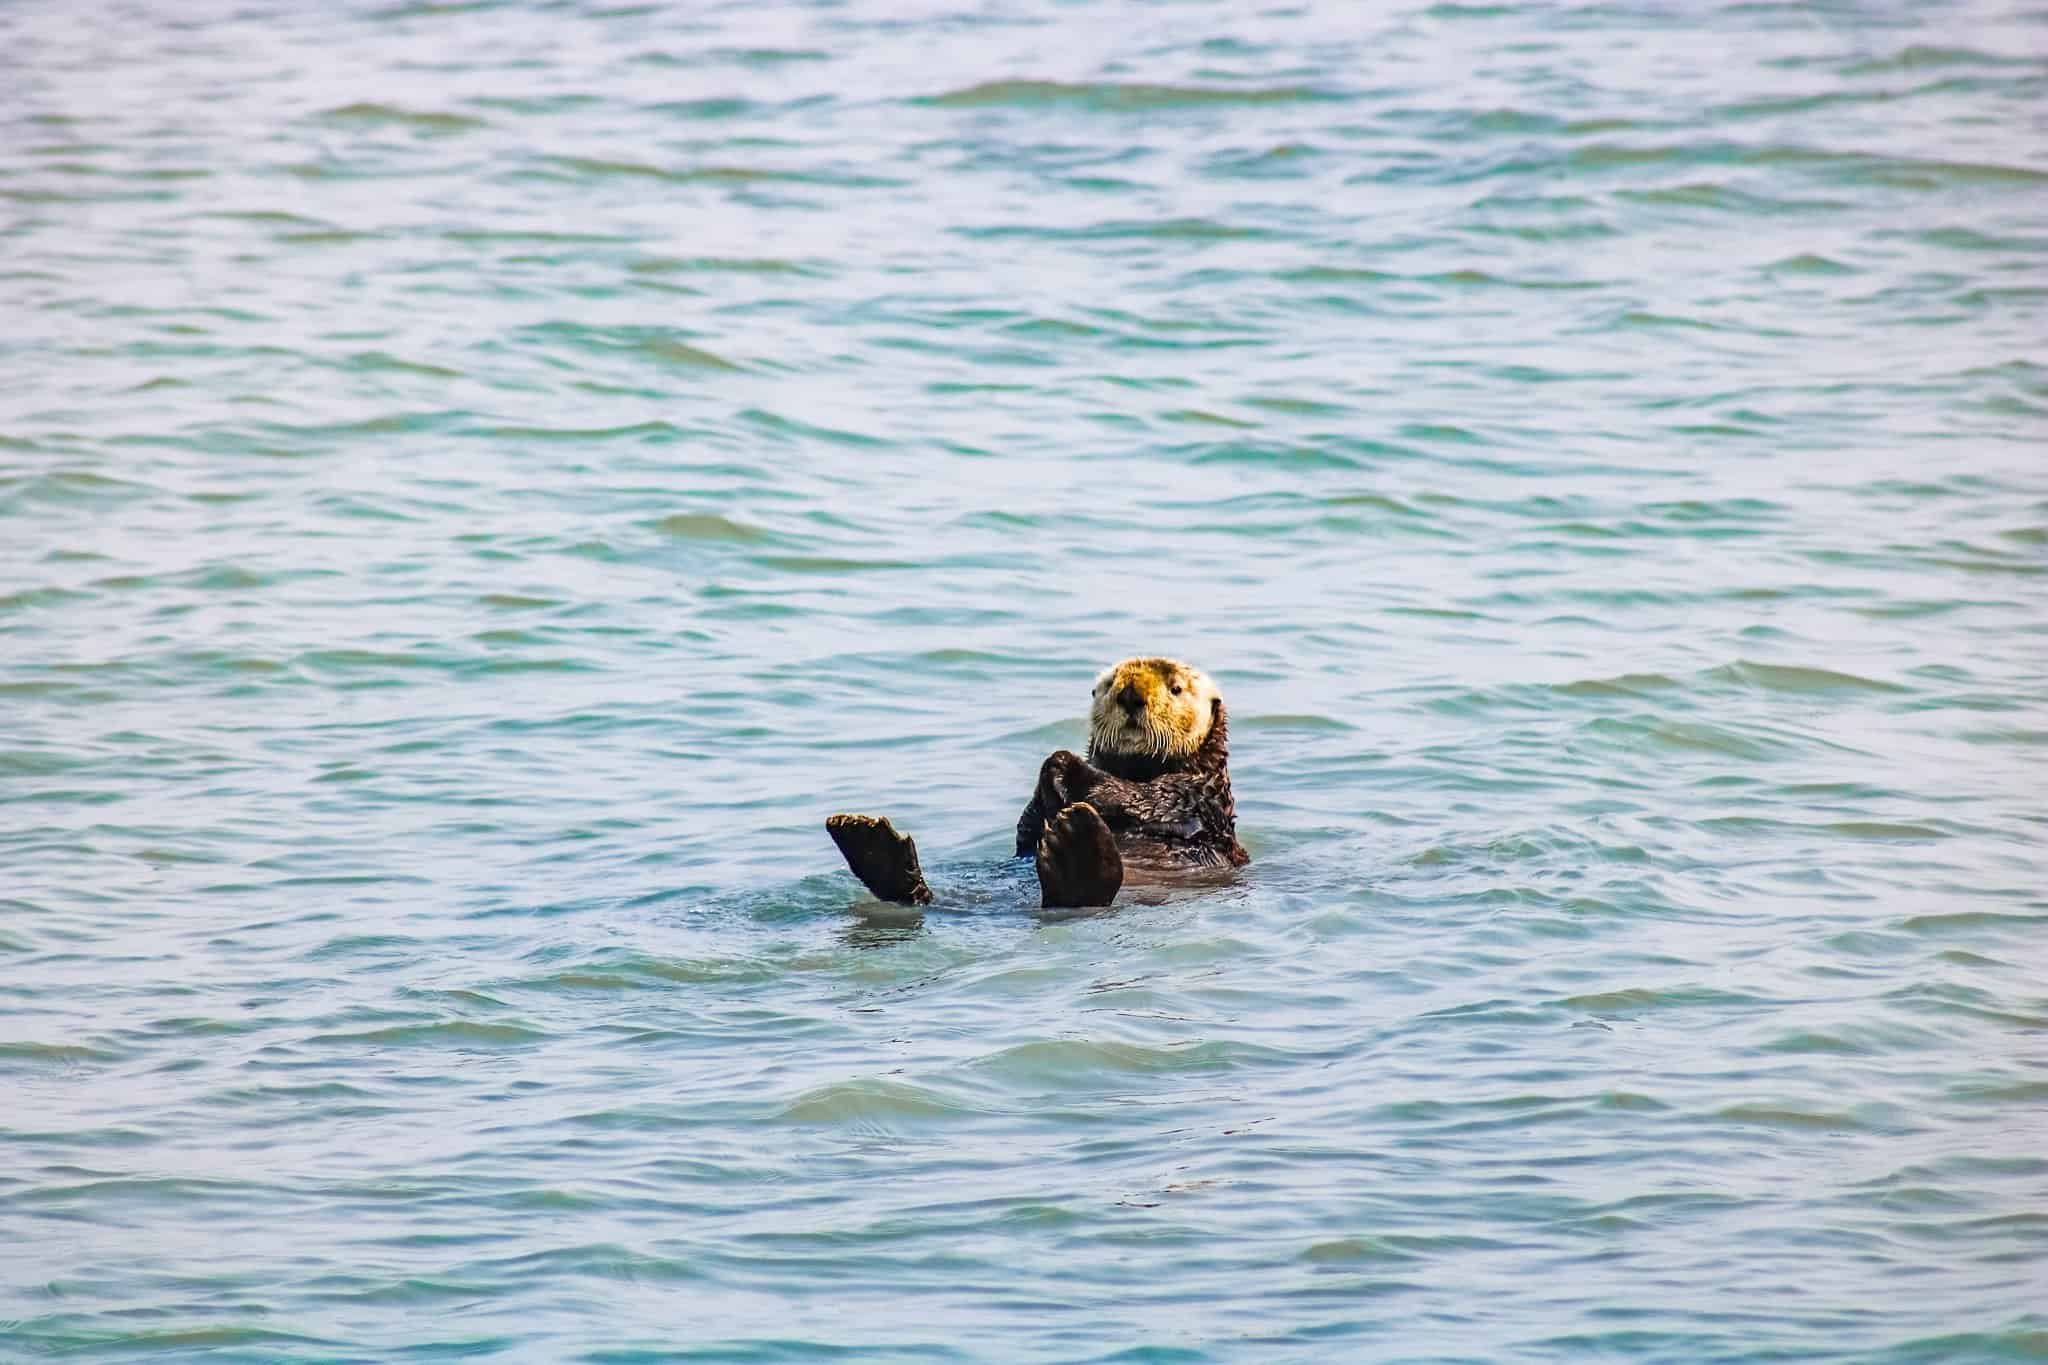 Floating Otter on Pursuit Collection Cruise Kenai Fjord Alaska - The Next Trip